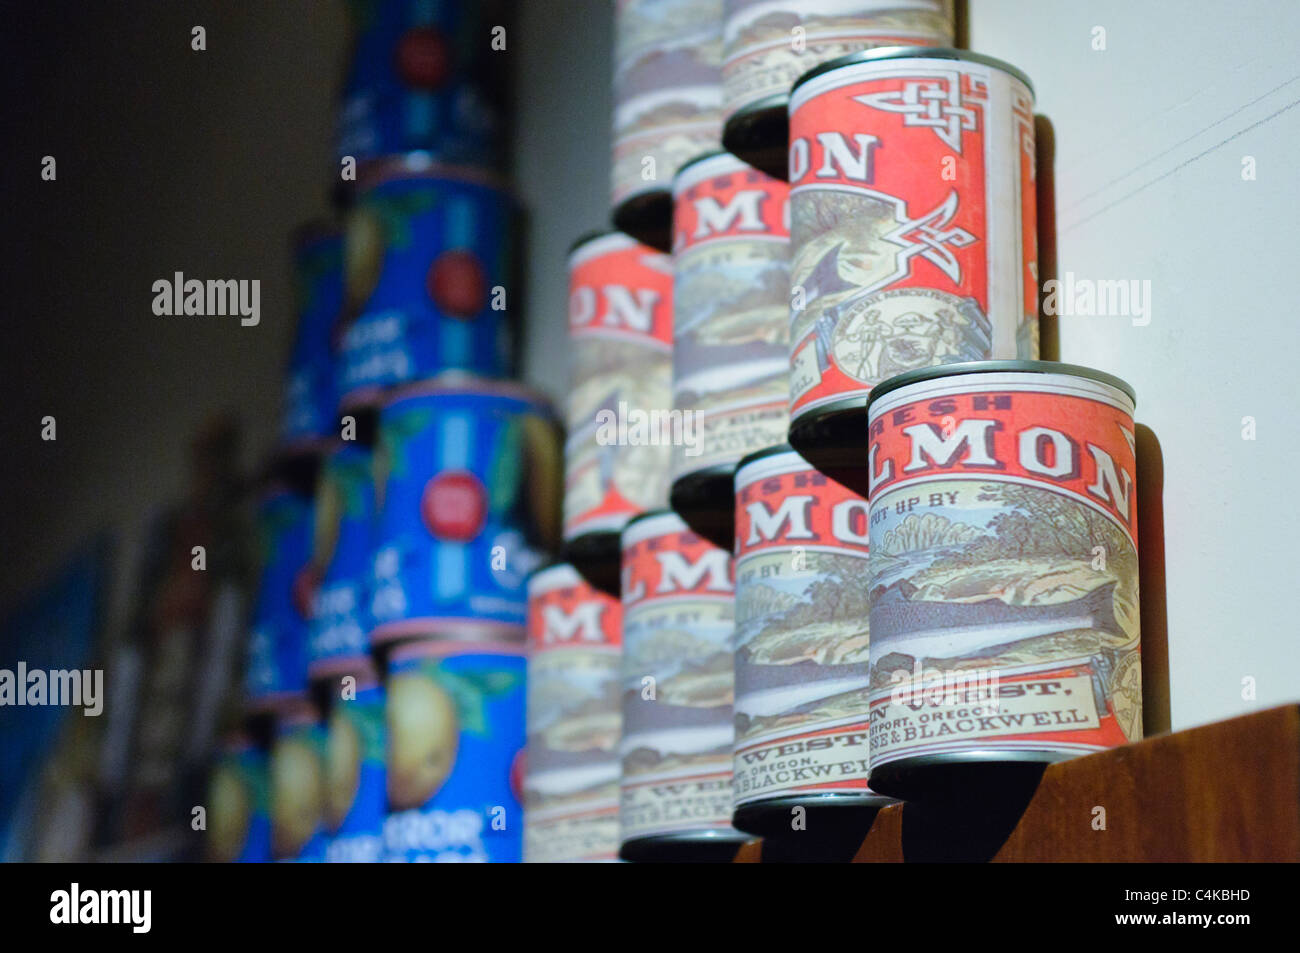 Tins of salmon stacked in a old fashioned grocers shop - Stock Image